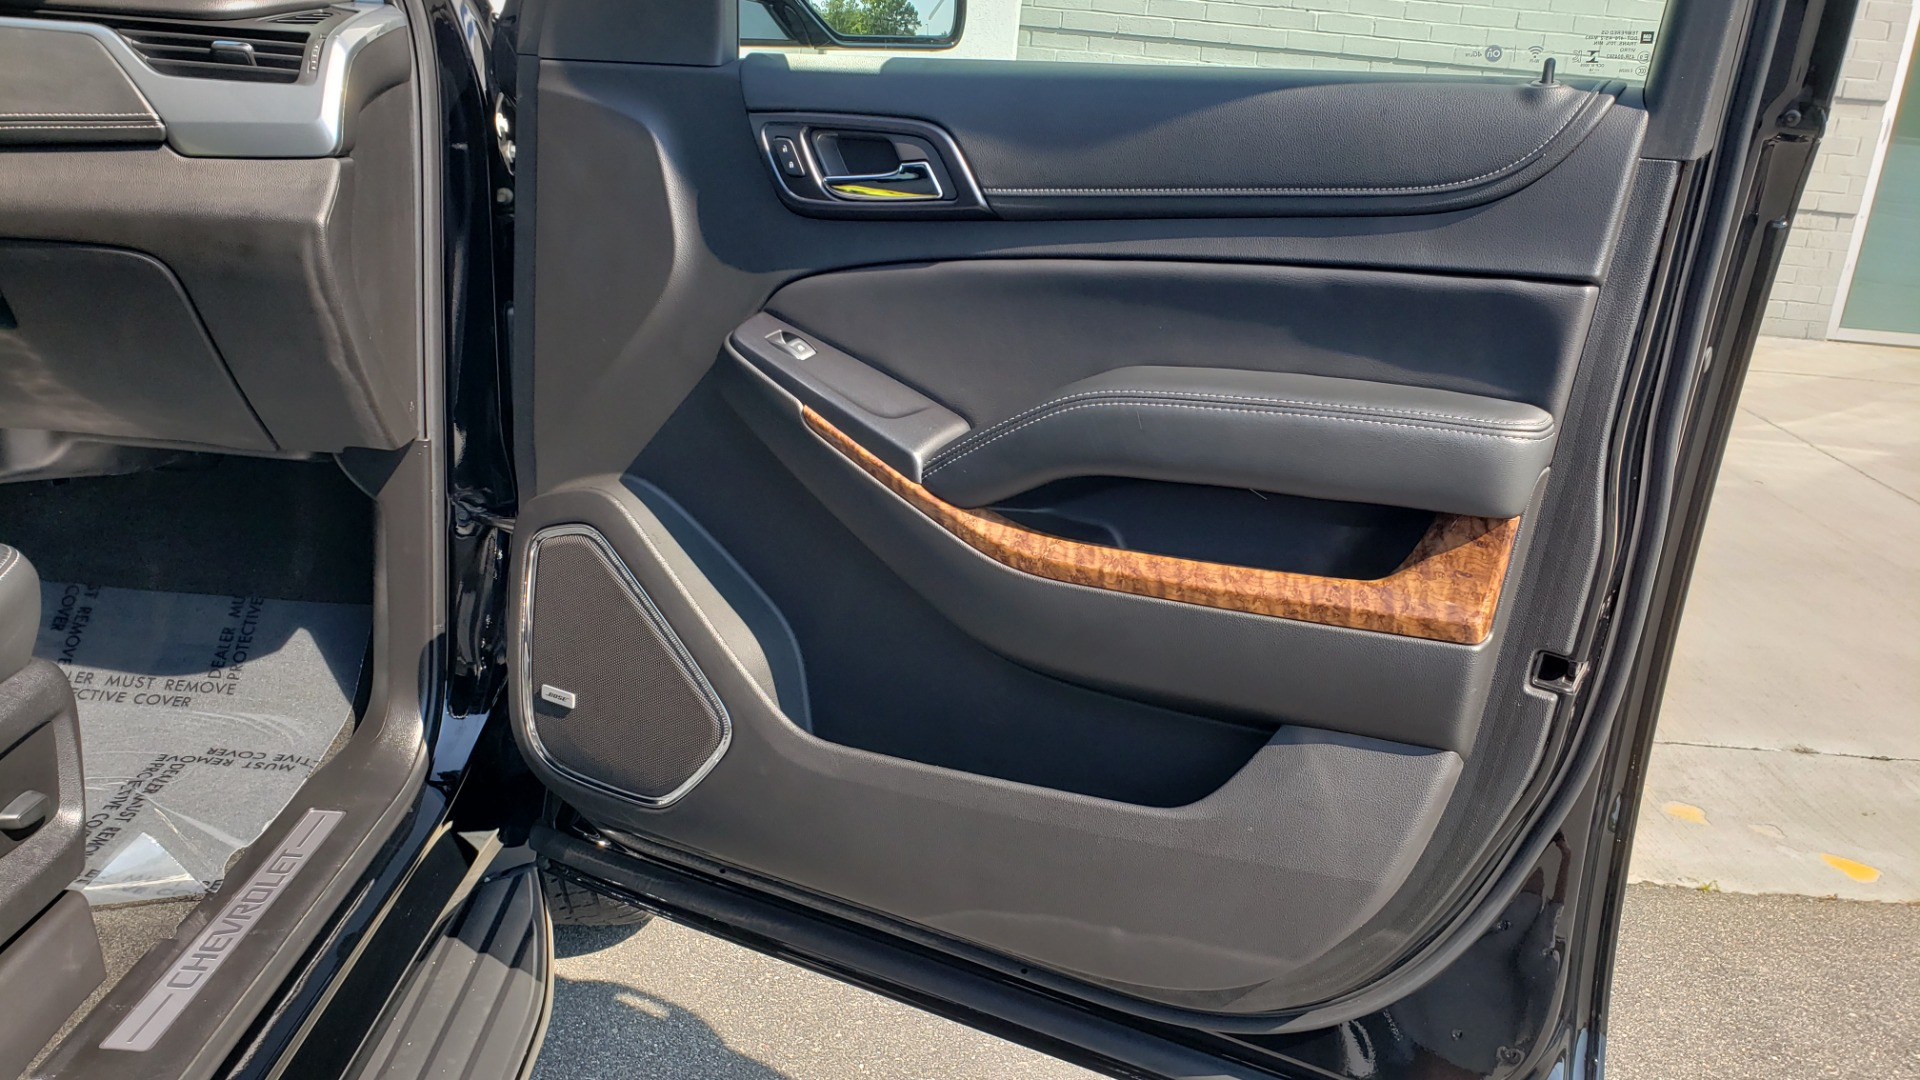 Used 2018 Chevrolet TAHOE PREMIER RST / 4X4 / NAV / BOSE / SUNROOF / 3-ROW / REARVIEW for sale $65,995 at Formula Imports in Charlotte NC 28227 73